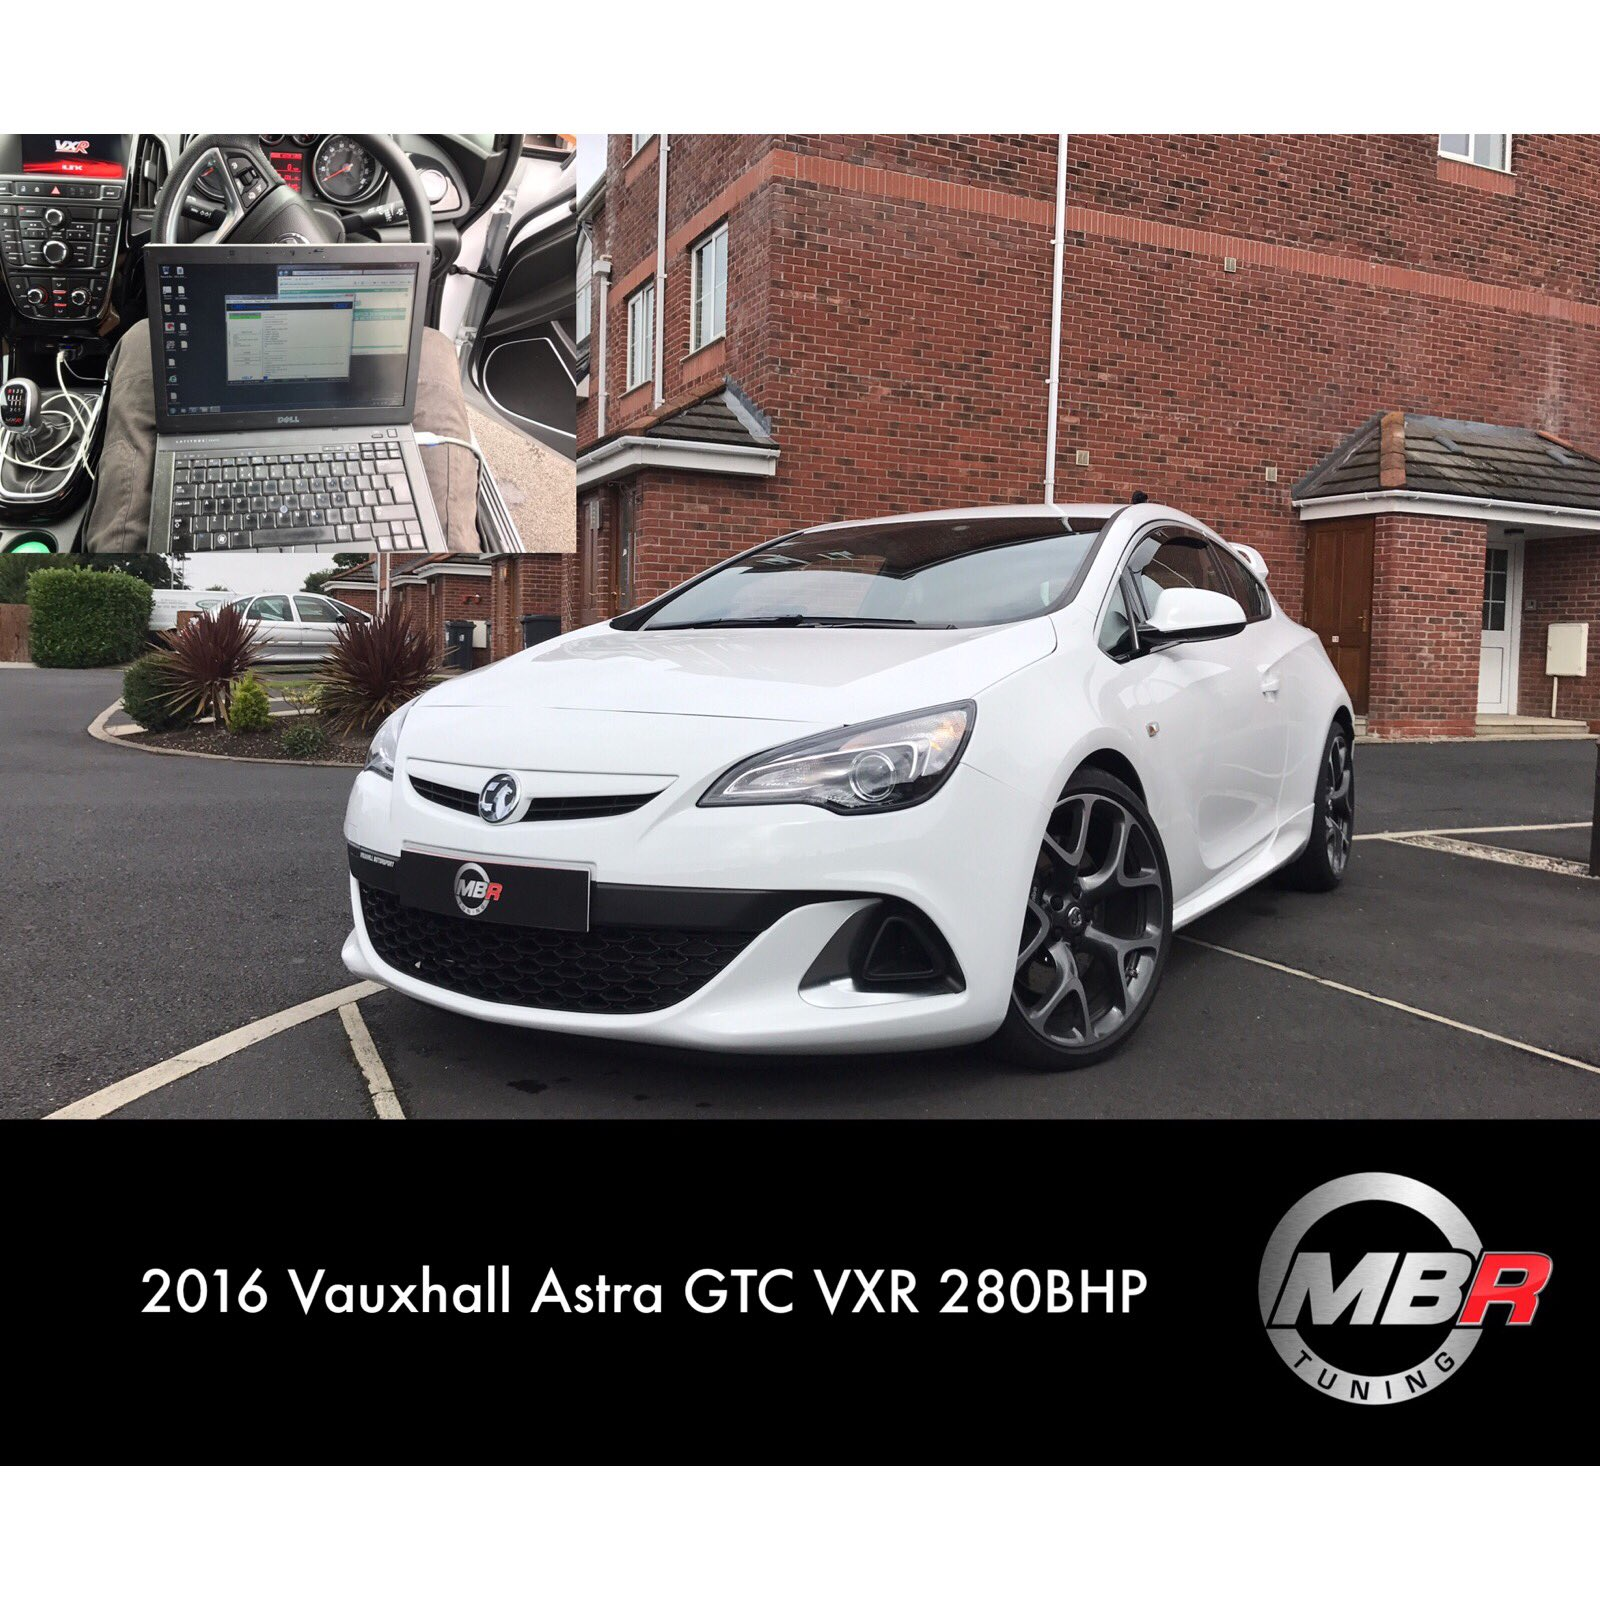 Mbr Tuning On Twitter Astra Gtc Vxr 280bhp 310bhp Mbrtuning Remap Reming Performance